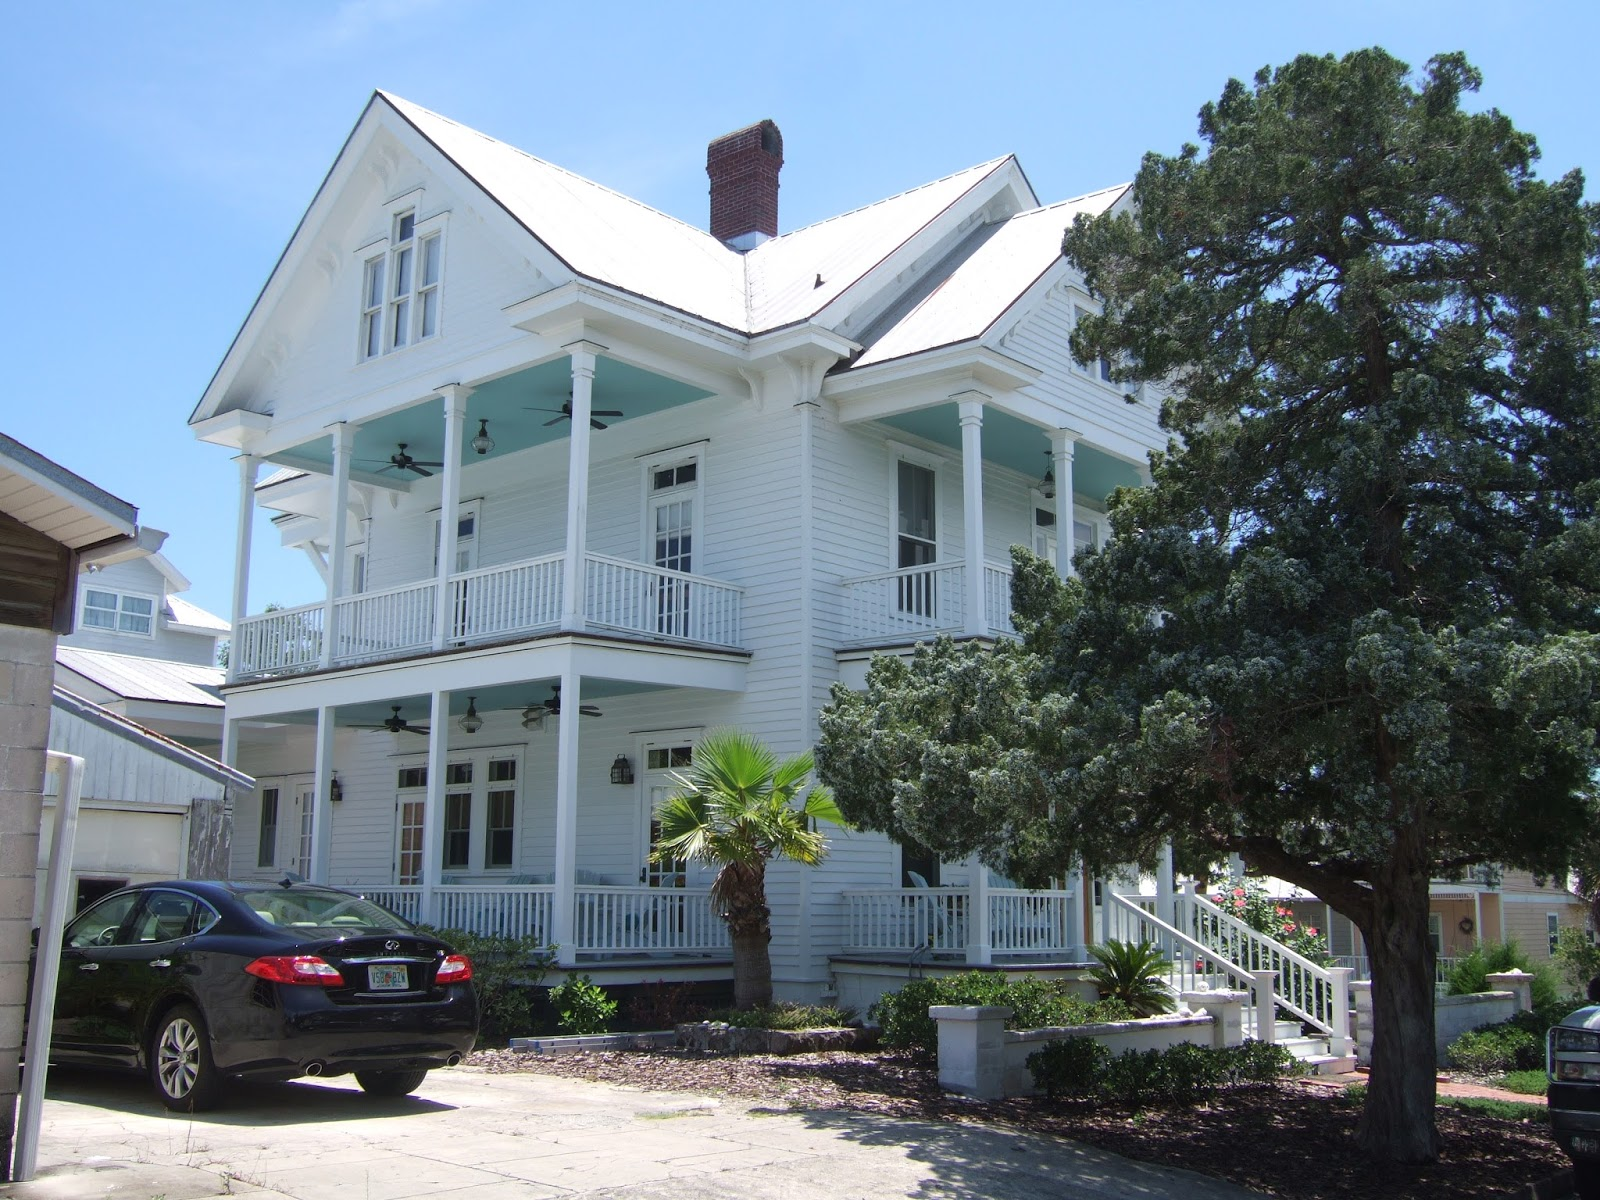 Surprising Easy Life Meal And Party Planning Cedar Key Old Florida Beauty Complete Home Design Collection Papxelindsey Bellcom